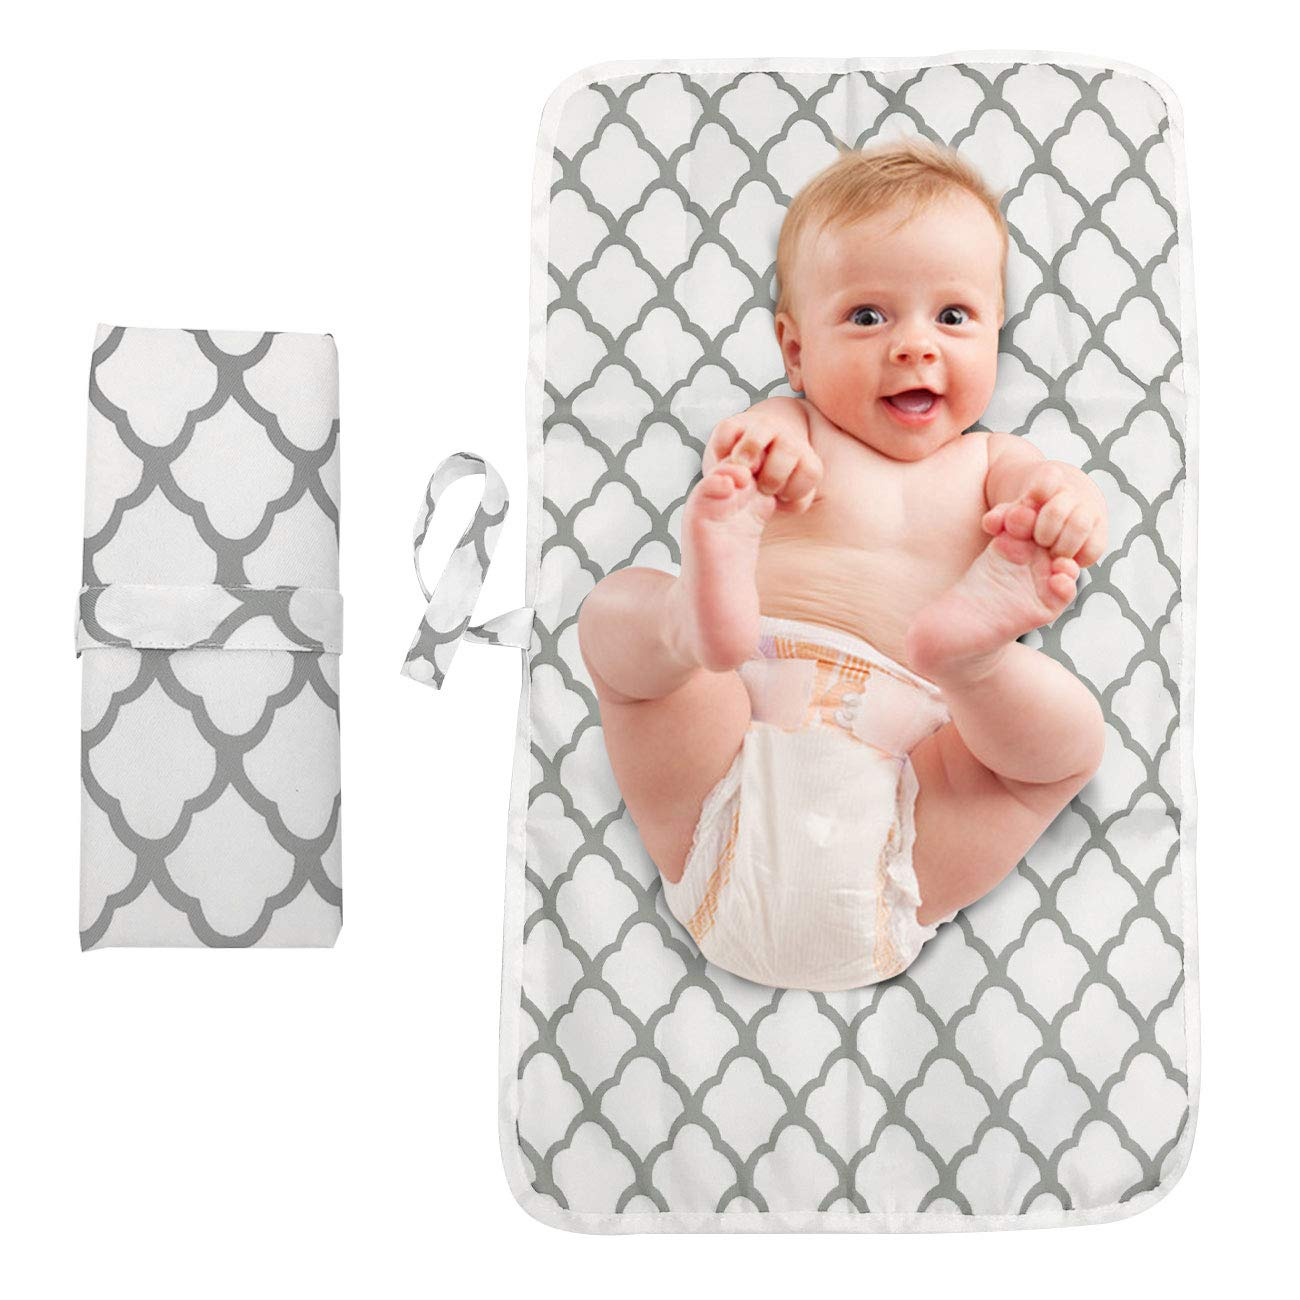 Portable Diaper Changing Pad, Entyle Waterproof Baby Changing Mat, Washable Lightweight Foldable Travel Mat Station for Toddlers Infants Newborns (White)